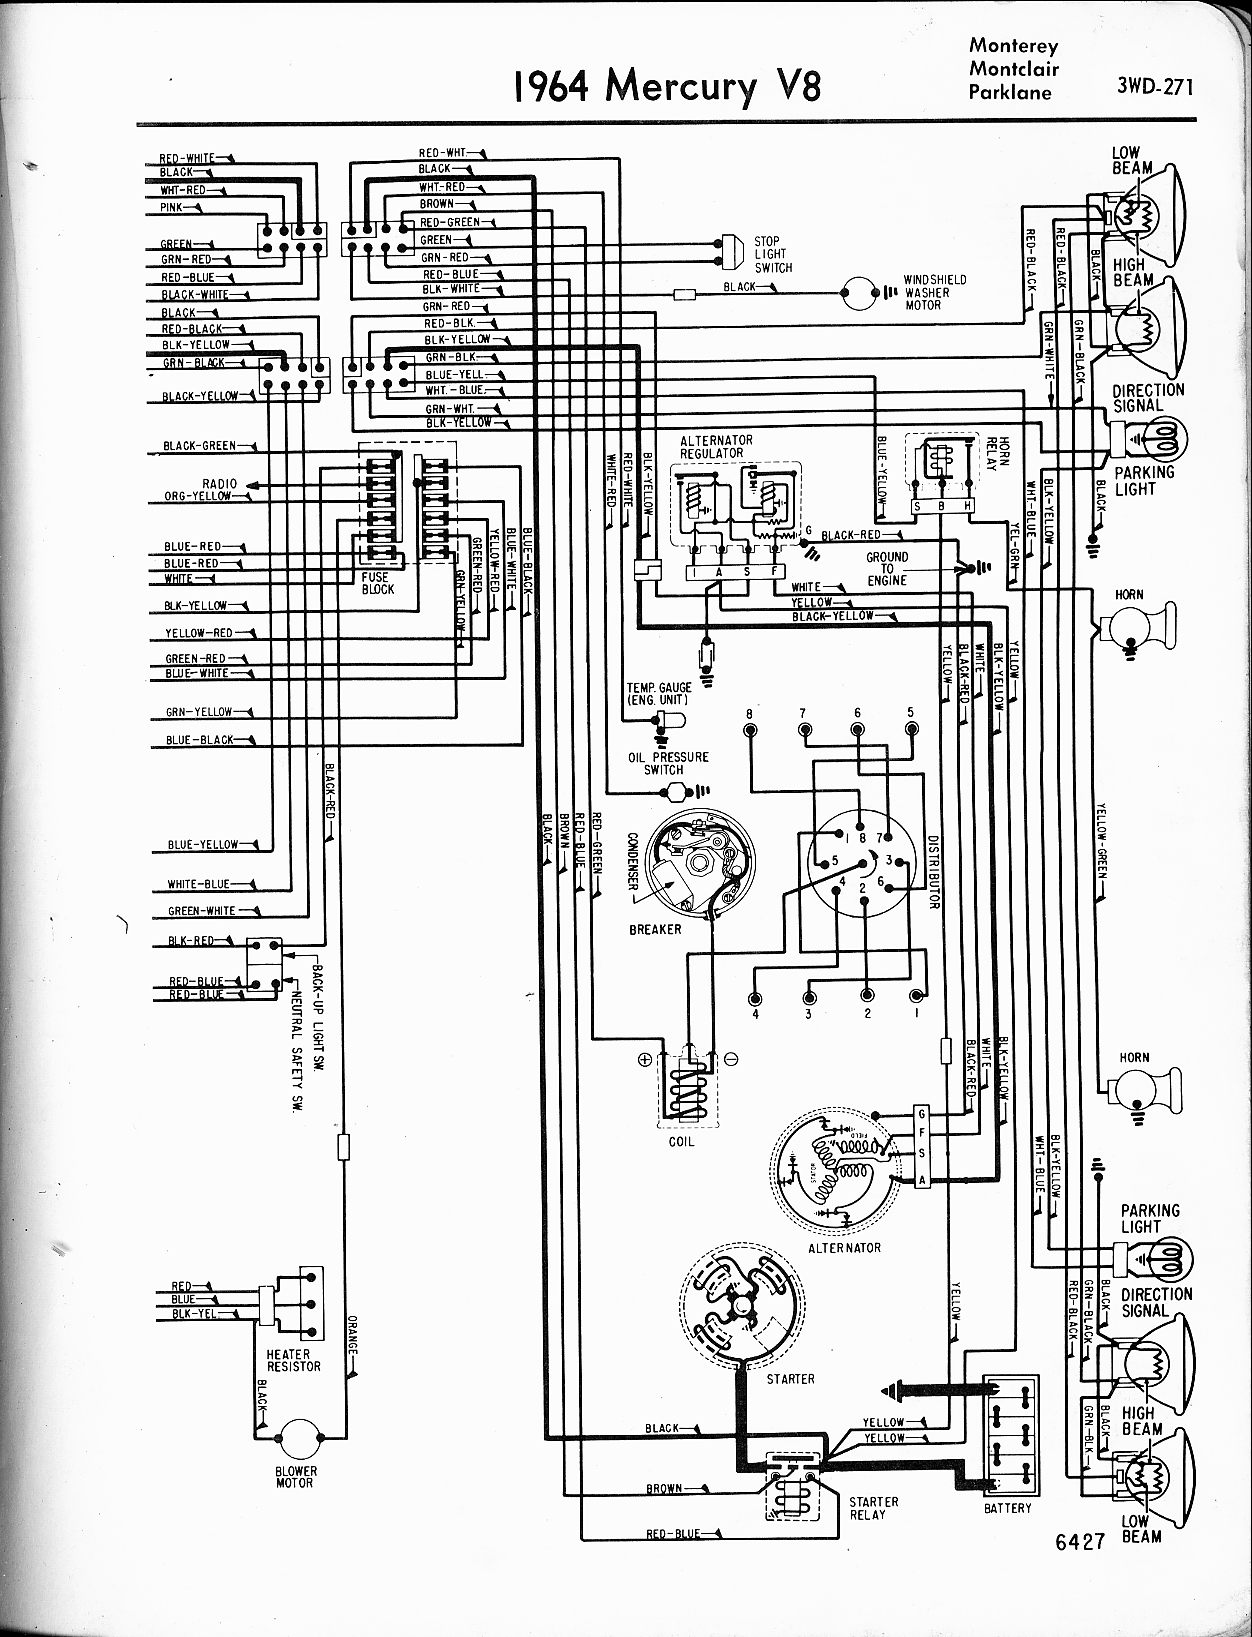 Peachy 1964 Ford Ranchero Fuse Box Diagram Wiring Diagram Data Schema Dandim Mohammedshrine Wiring Diagrams Dandimmohammedshrineorg